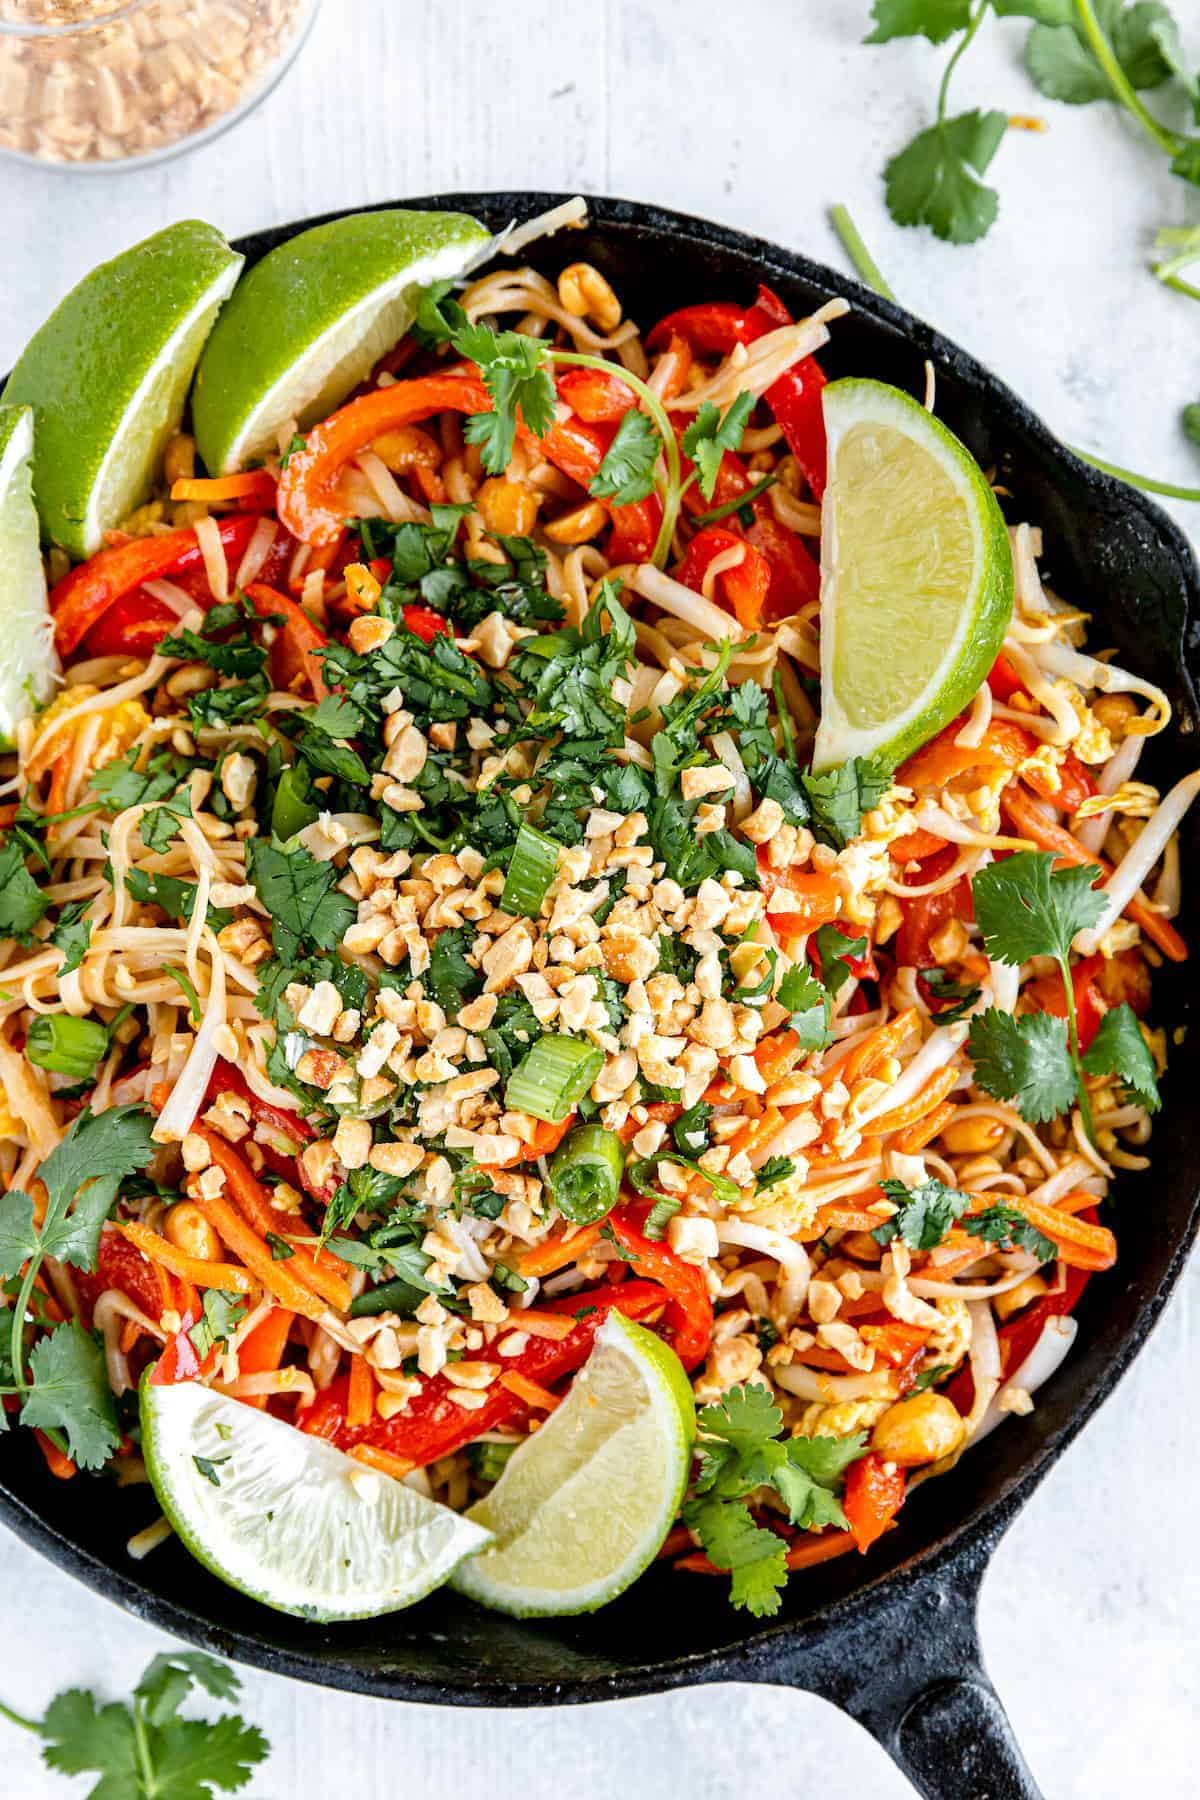 Pad Thai in a black cast iron skillet garnished with lemon wedges